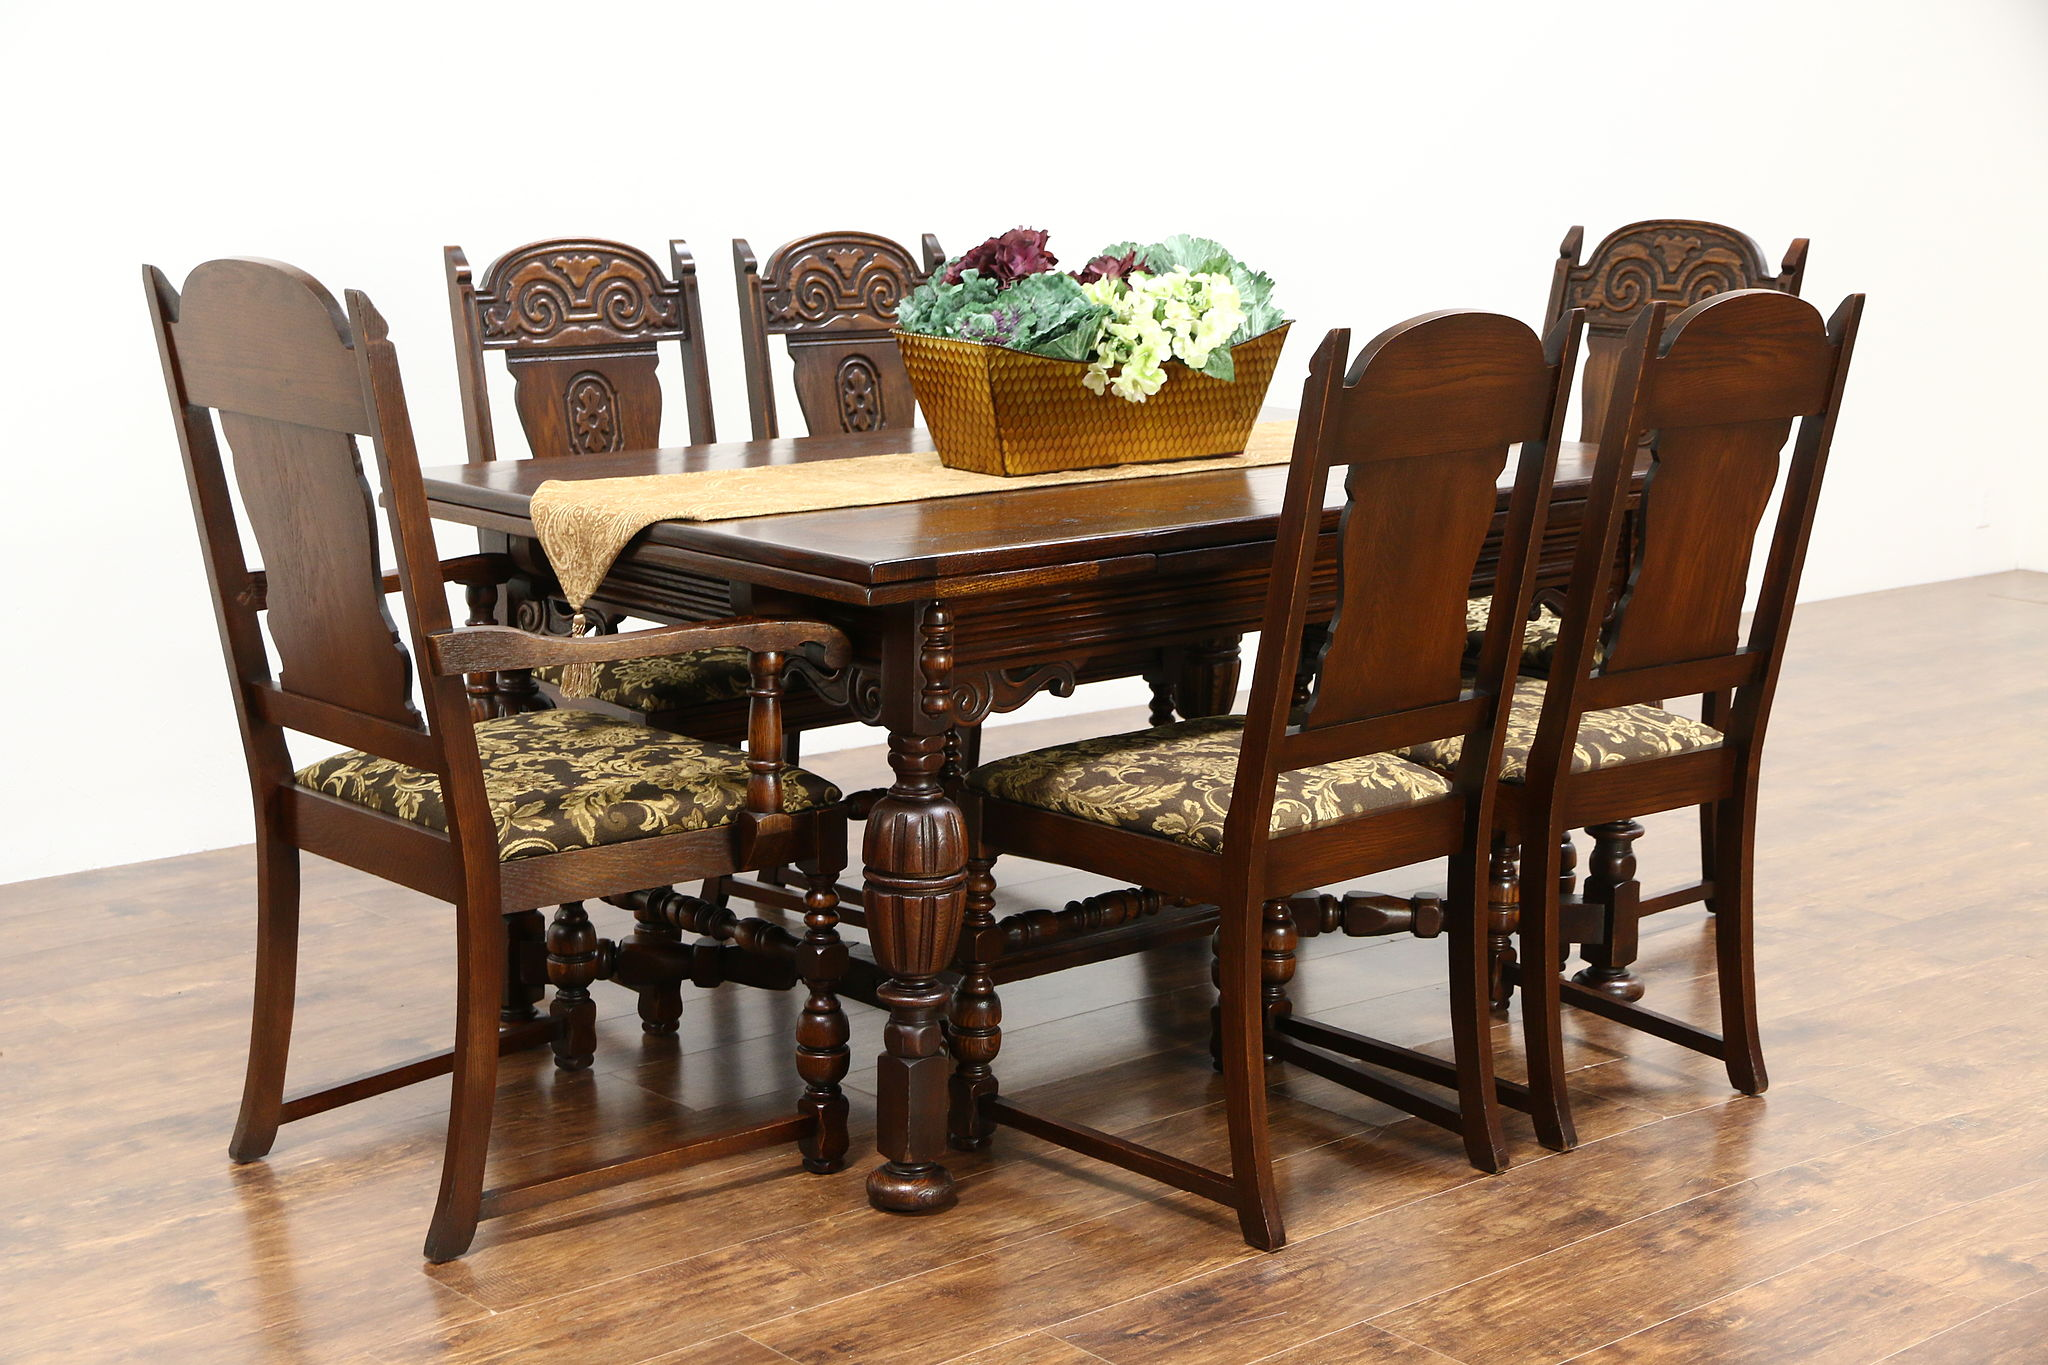 English Tudor Style 1920 Antique Oak Dining Set, 6 Chairs New Upholstery,  Table